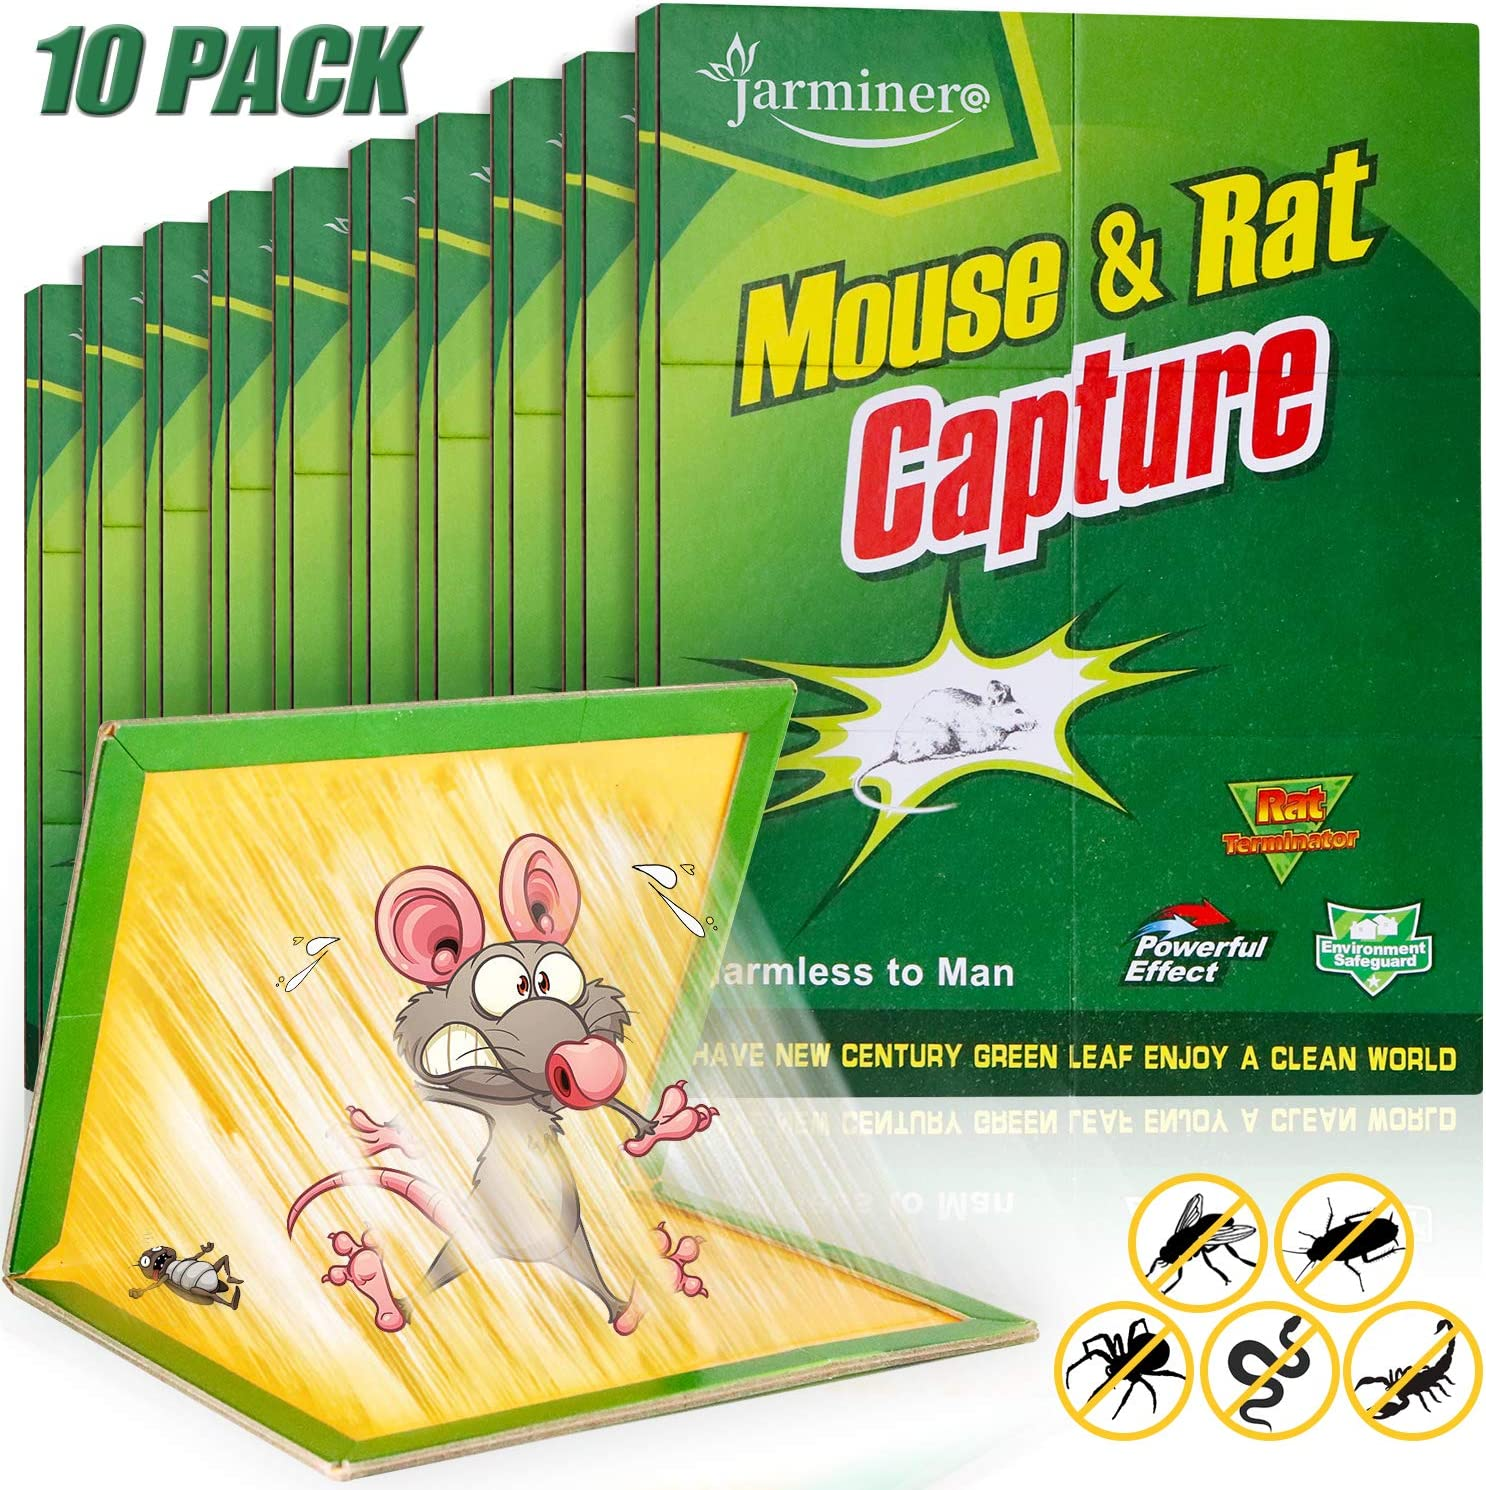 JARMINERO Mouse Traps, Humane Mouse Glue Trap, 10 PCS Rat/Mice Traps Sticky Pad Boards Strongly Adhesive Mouse Traps That Work No See Kill for House Indoor Outdoor Pet Safe